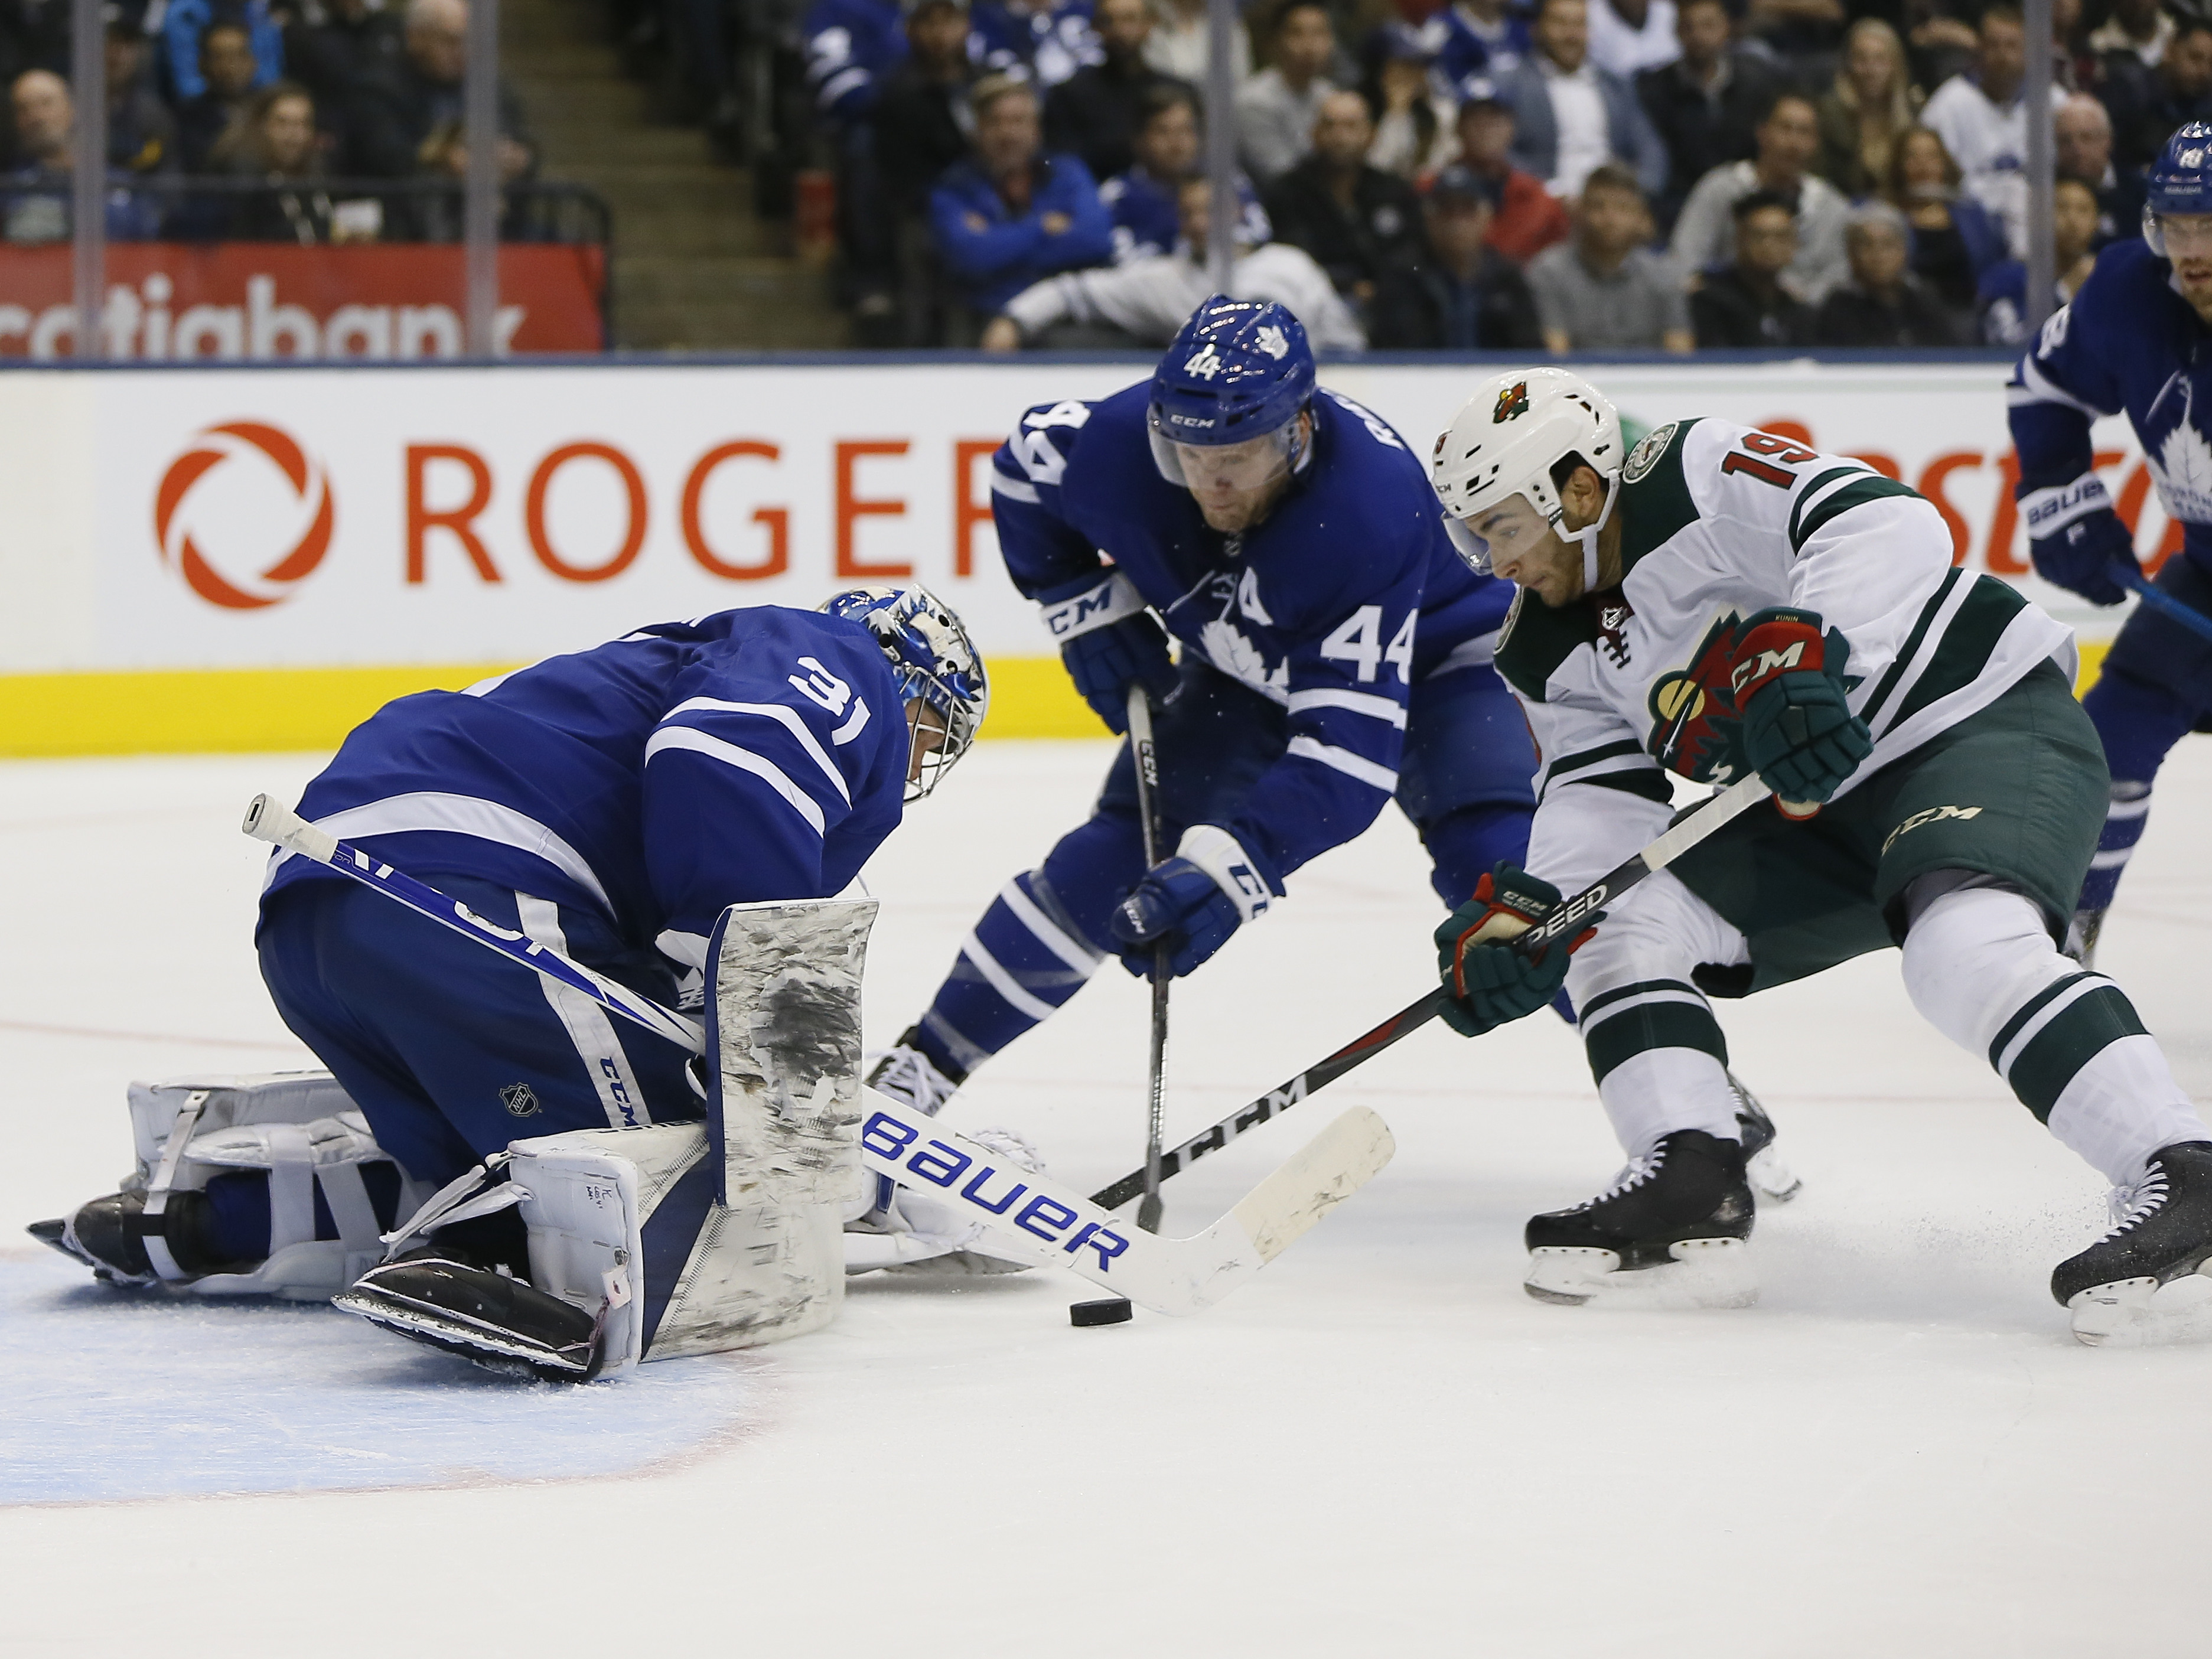 Game Preview: Minnesota Wild vs. Toronto Maple Leafs 12/31/19 @ 5:00PM CST at Xcel Energy Center